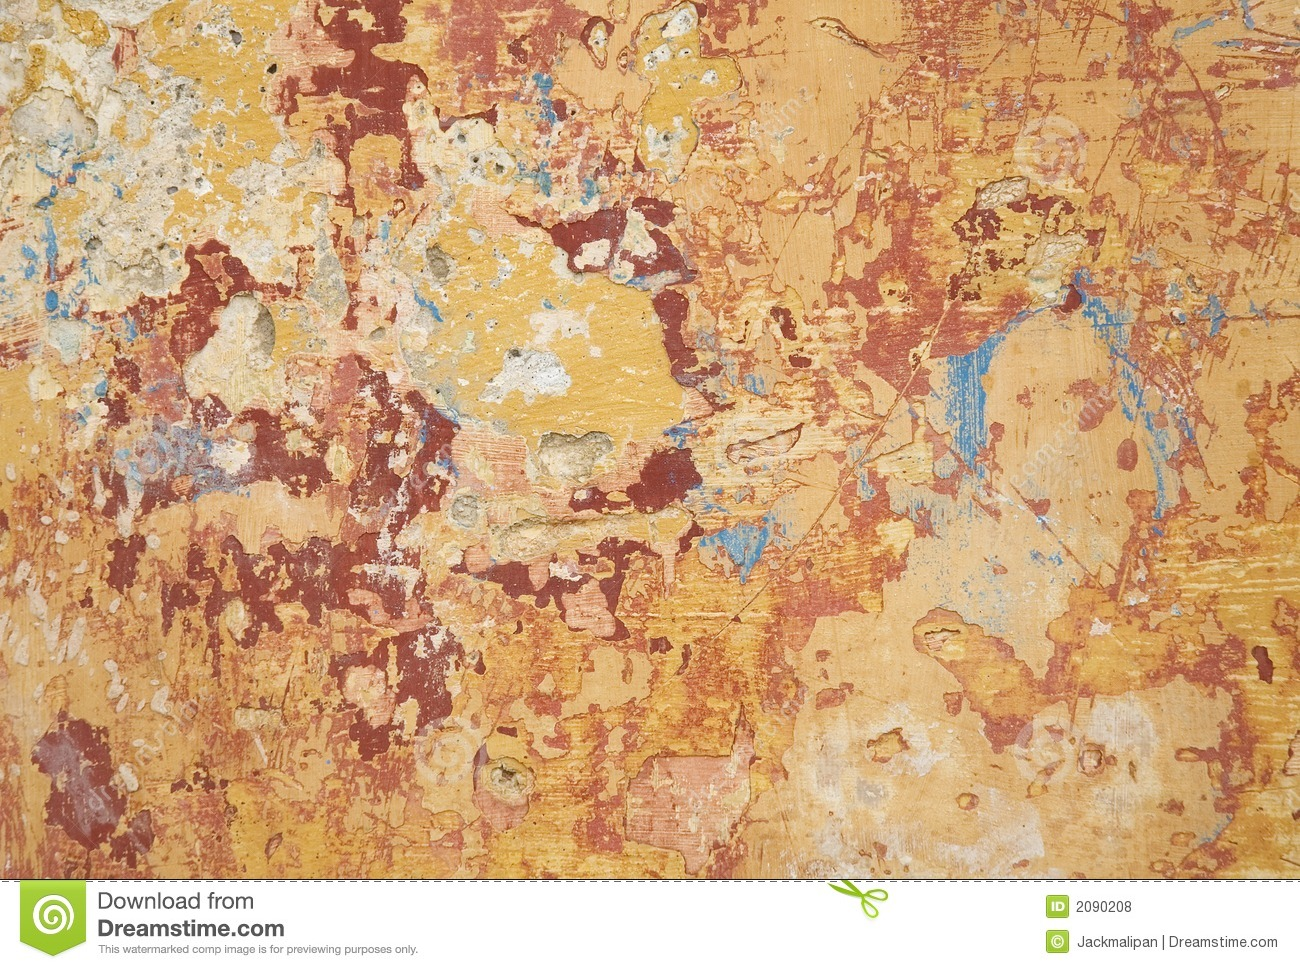 Multi Colour And Texture Paint On Wall Stock Photo Image of hues